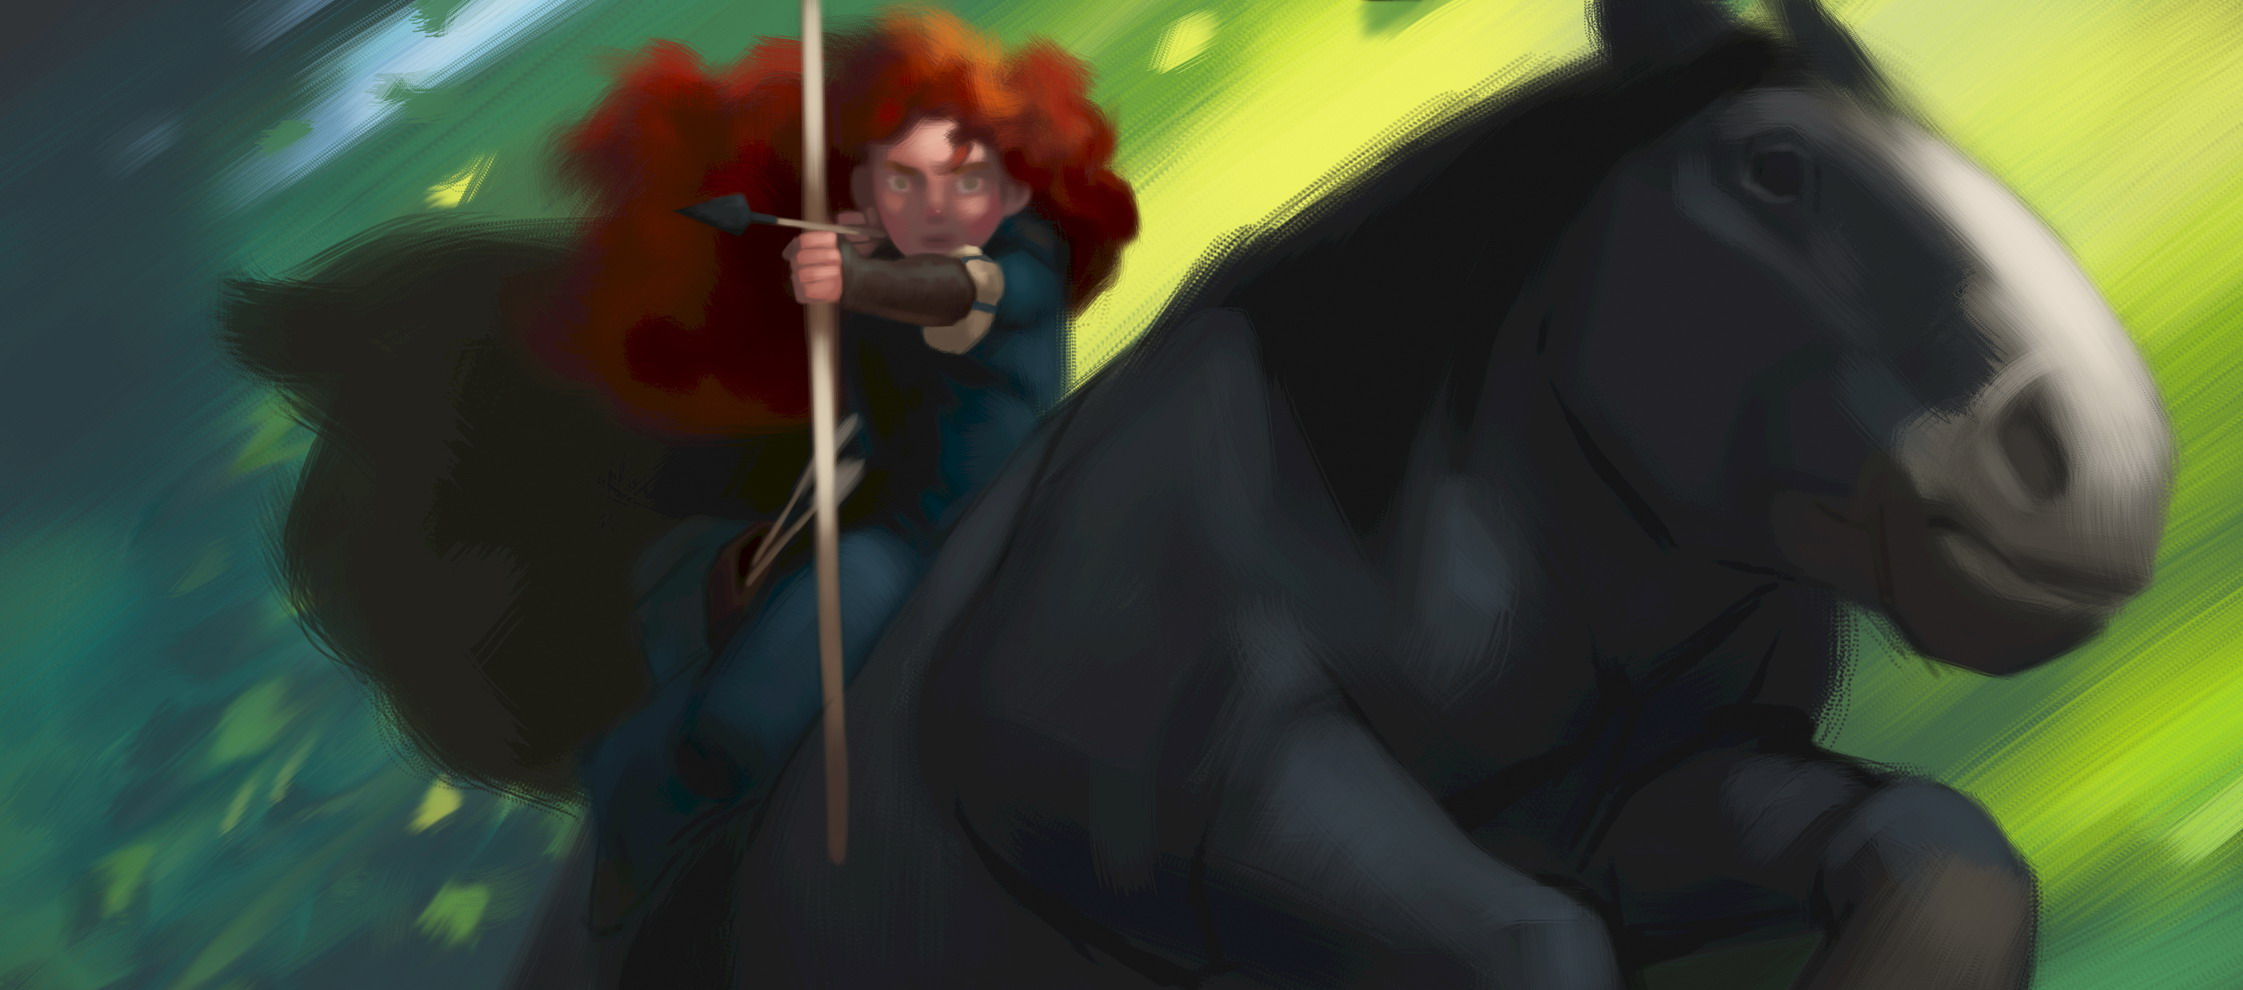 Watch: New 'Brave' Featurette Talks Merida's Story, Shows New Footage